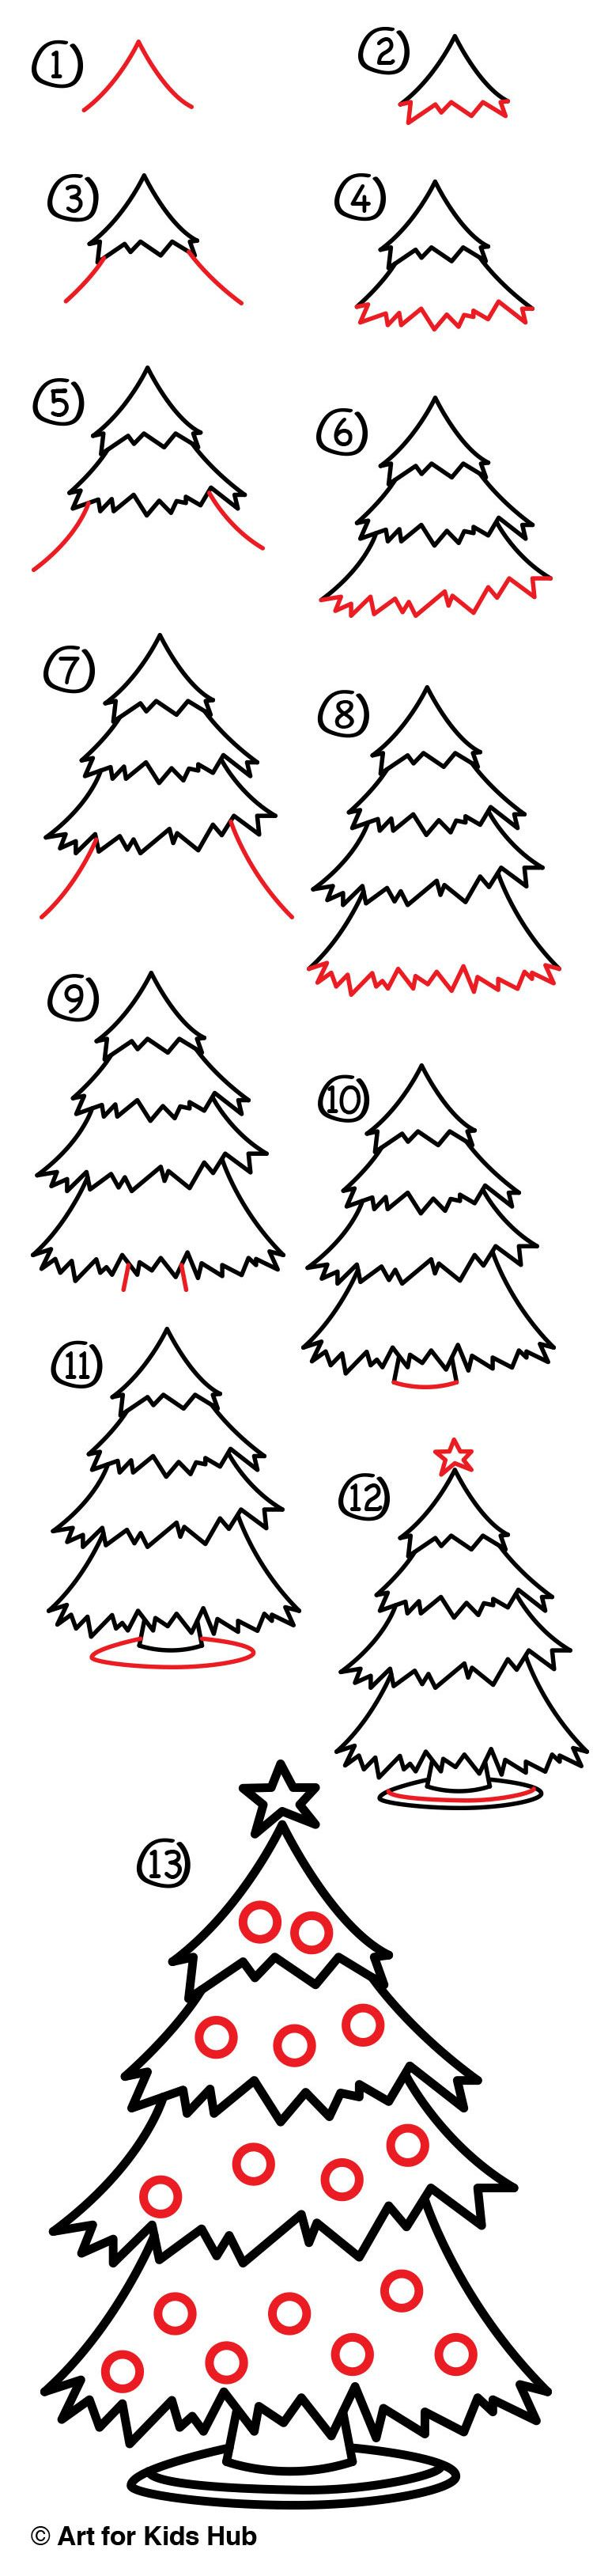 How To Draw A Christmas Tree Art For Kids Hub Art For Kids Hub Christmas Drawing Christmas Tree Art